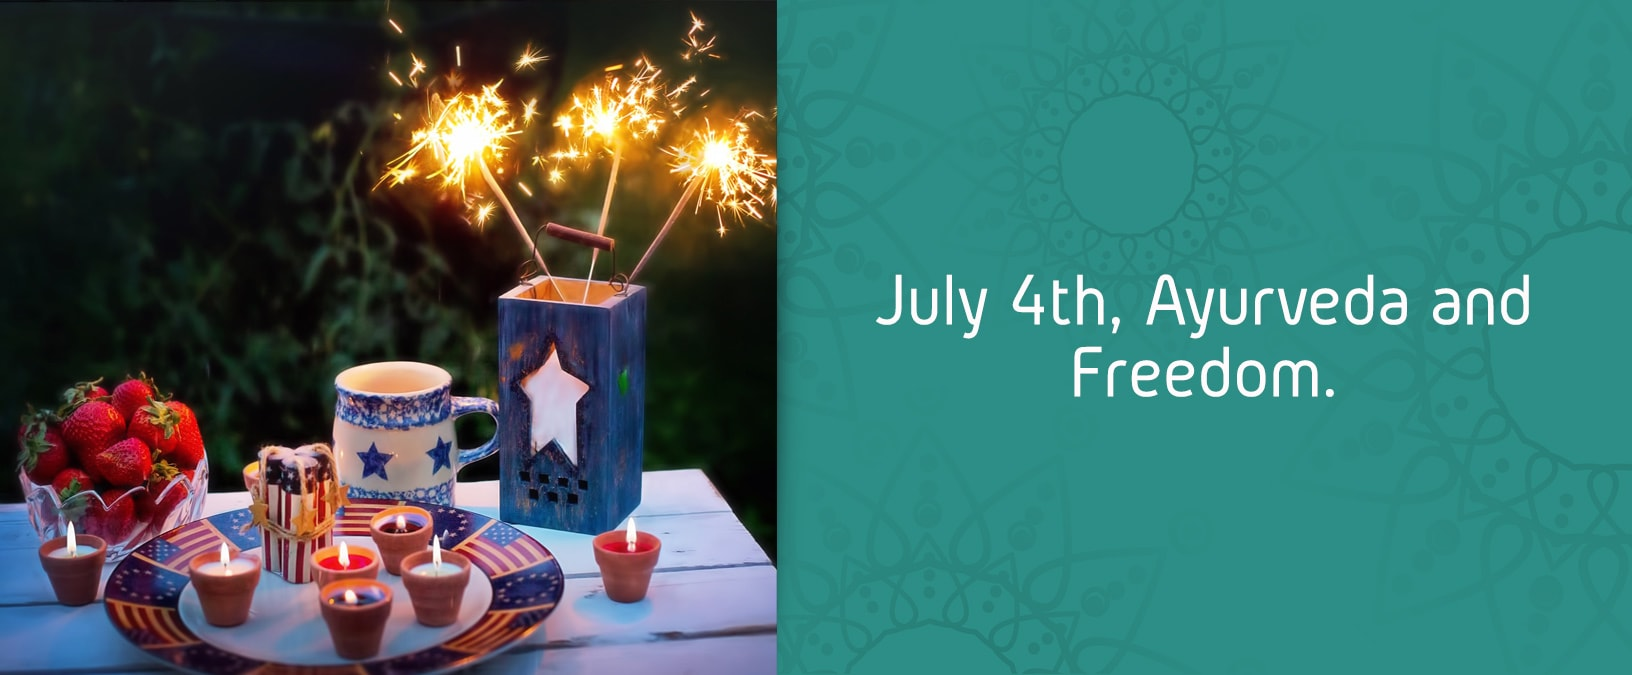 July 4th, Ayurveda and Freedom